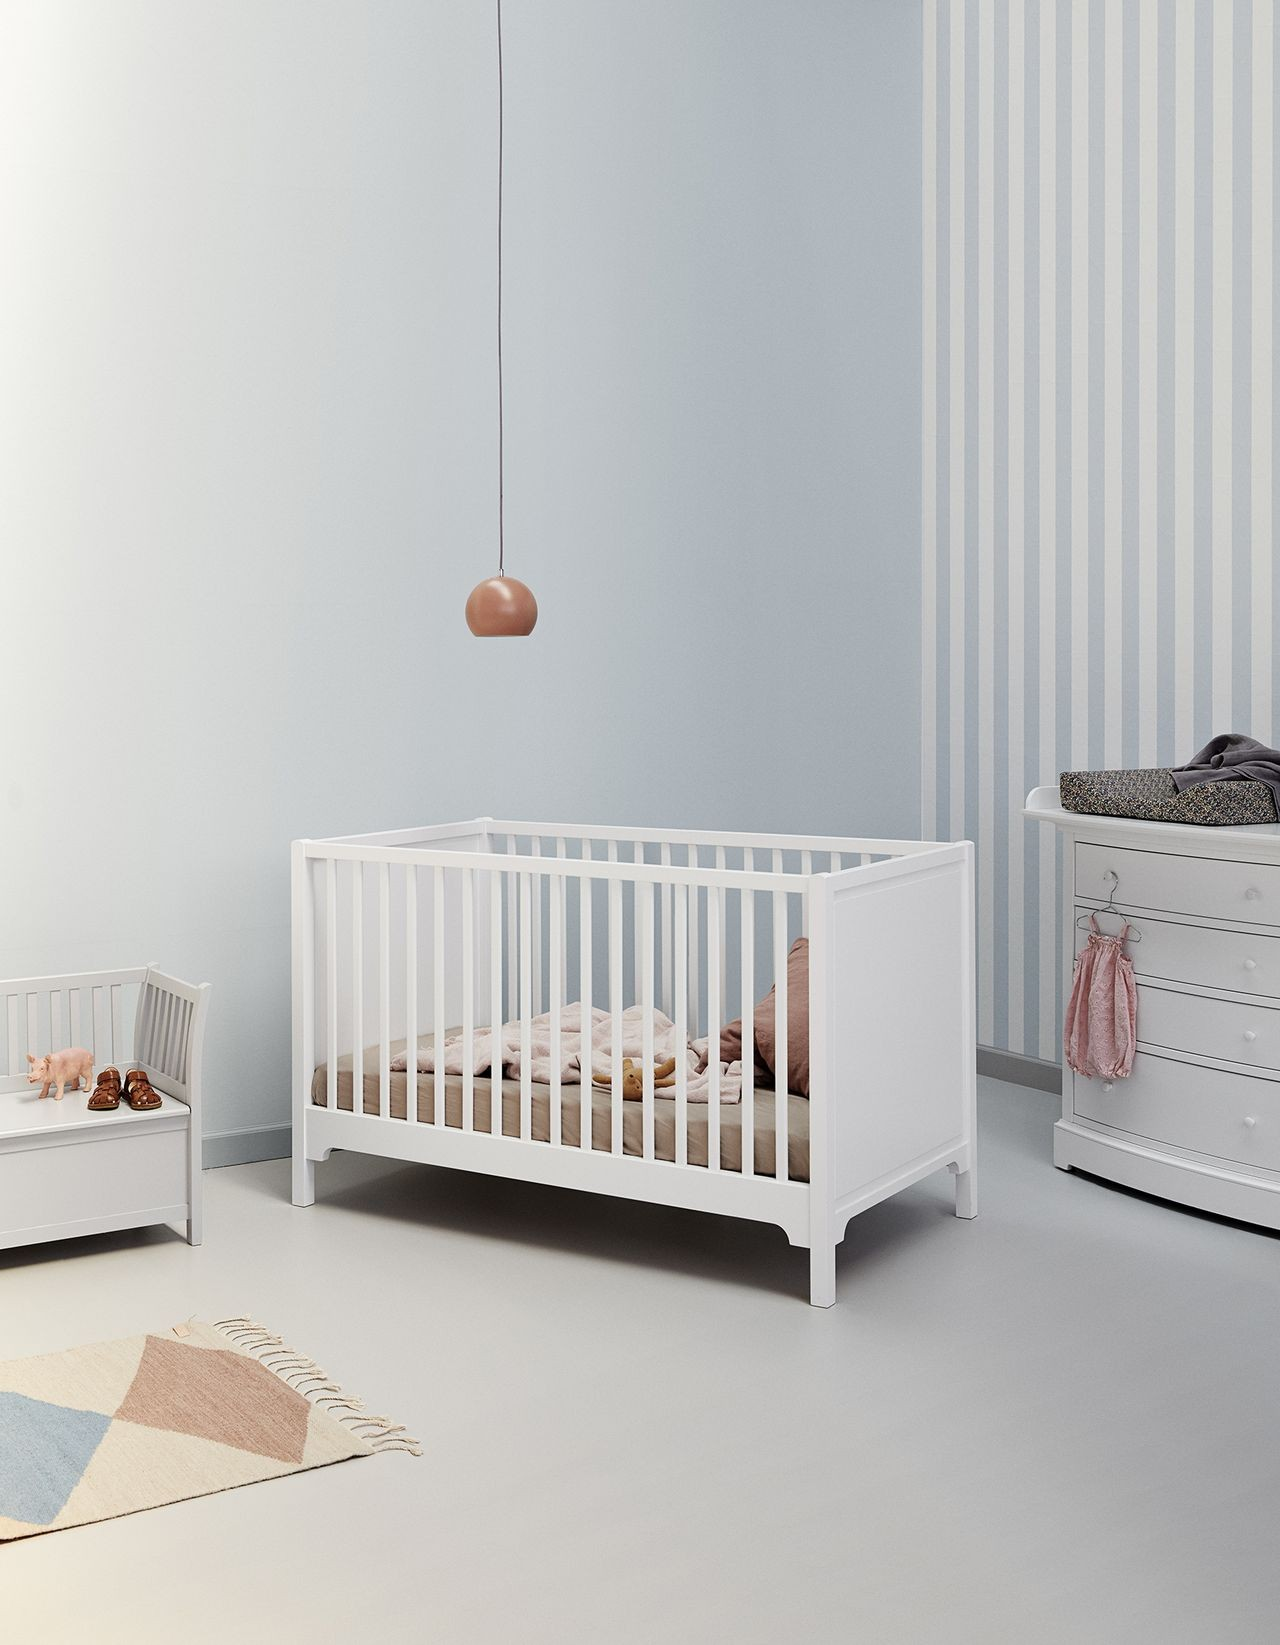 Oliver Furniture Seaside Babybett kaufen - Kleine Fabriek